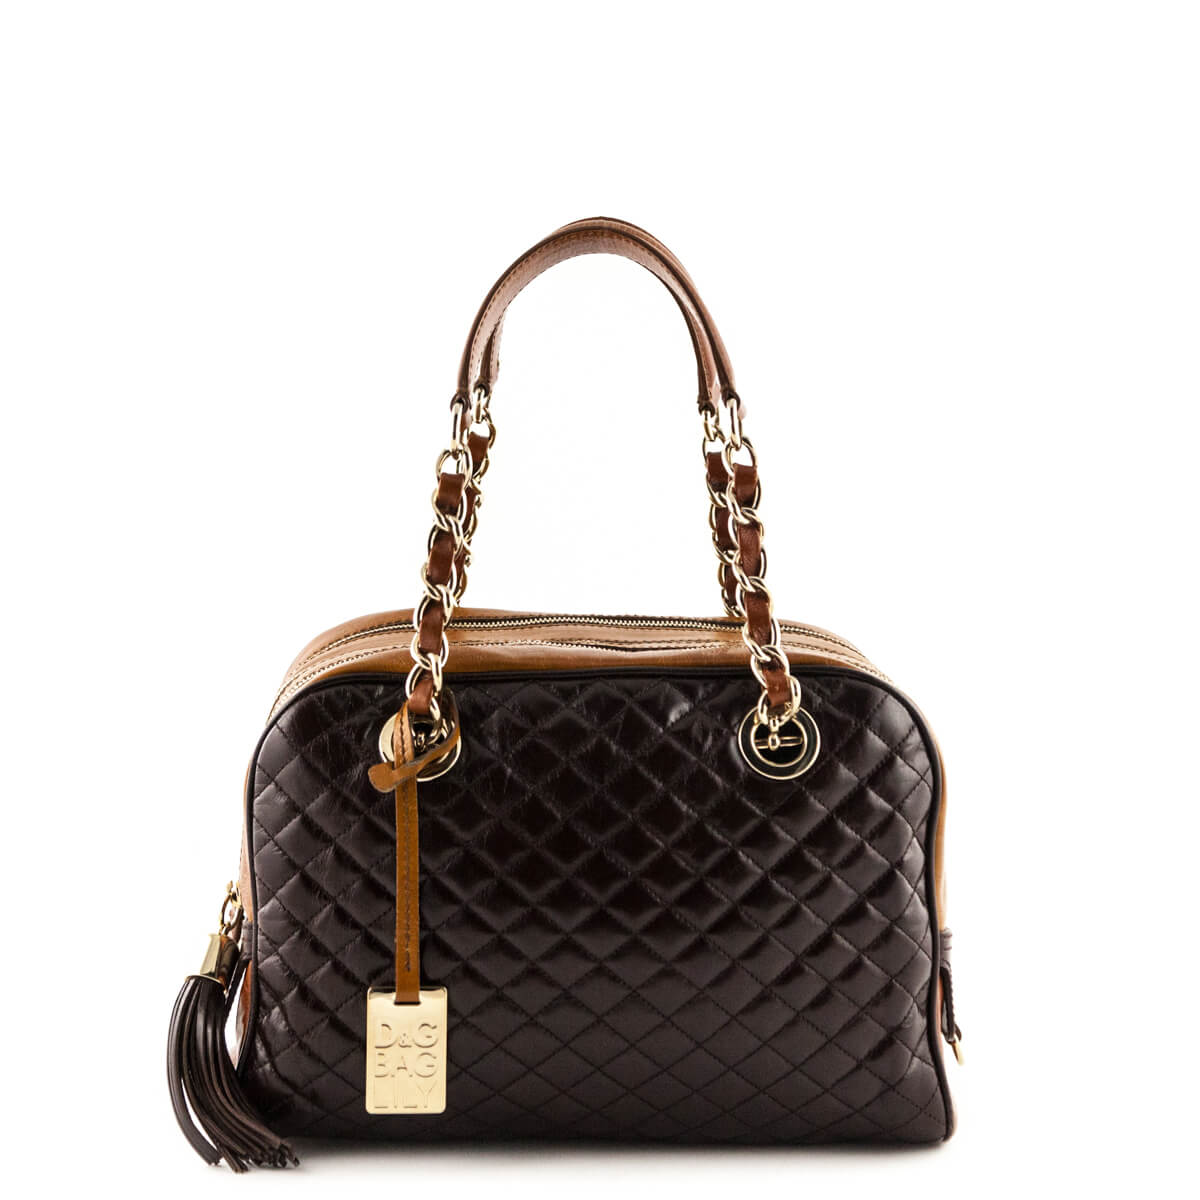 13a953577e1 Dolce   Gabbana Brown Calfskin Lily Bag - LOVE that BAG - Preowned  Authentic Designer Handbags ...